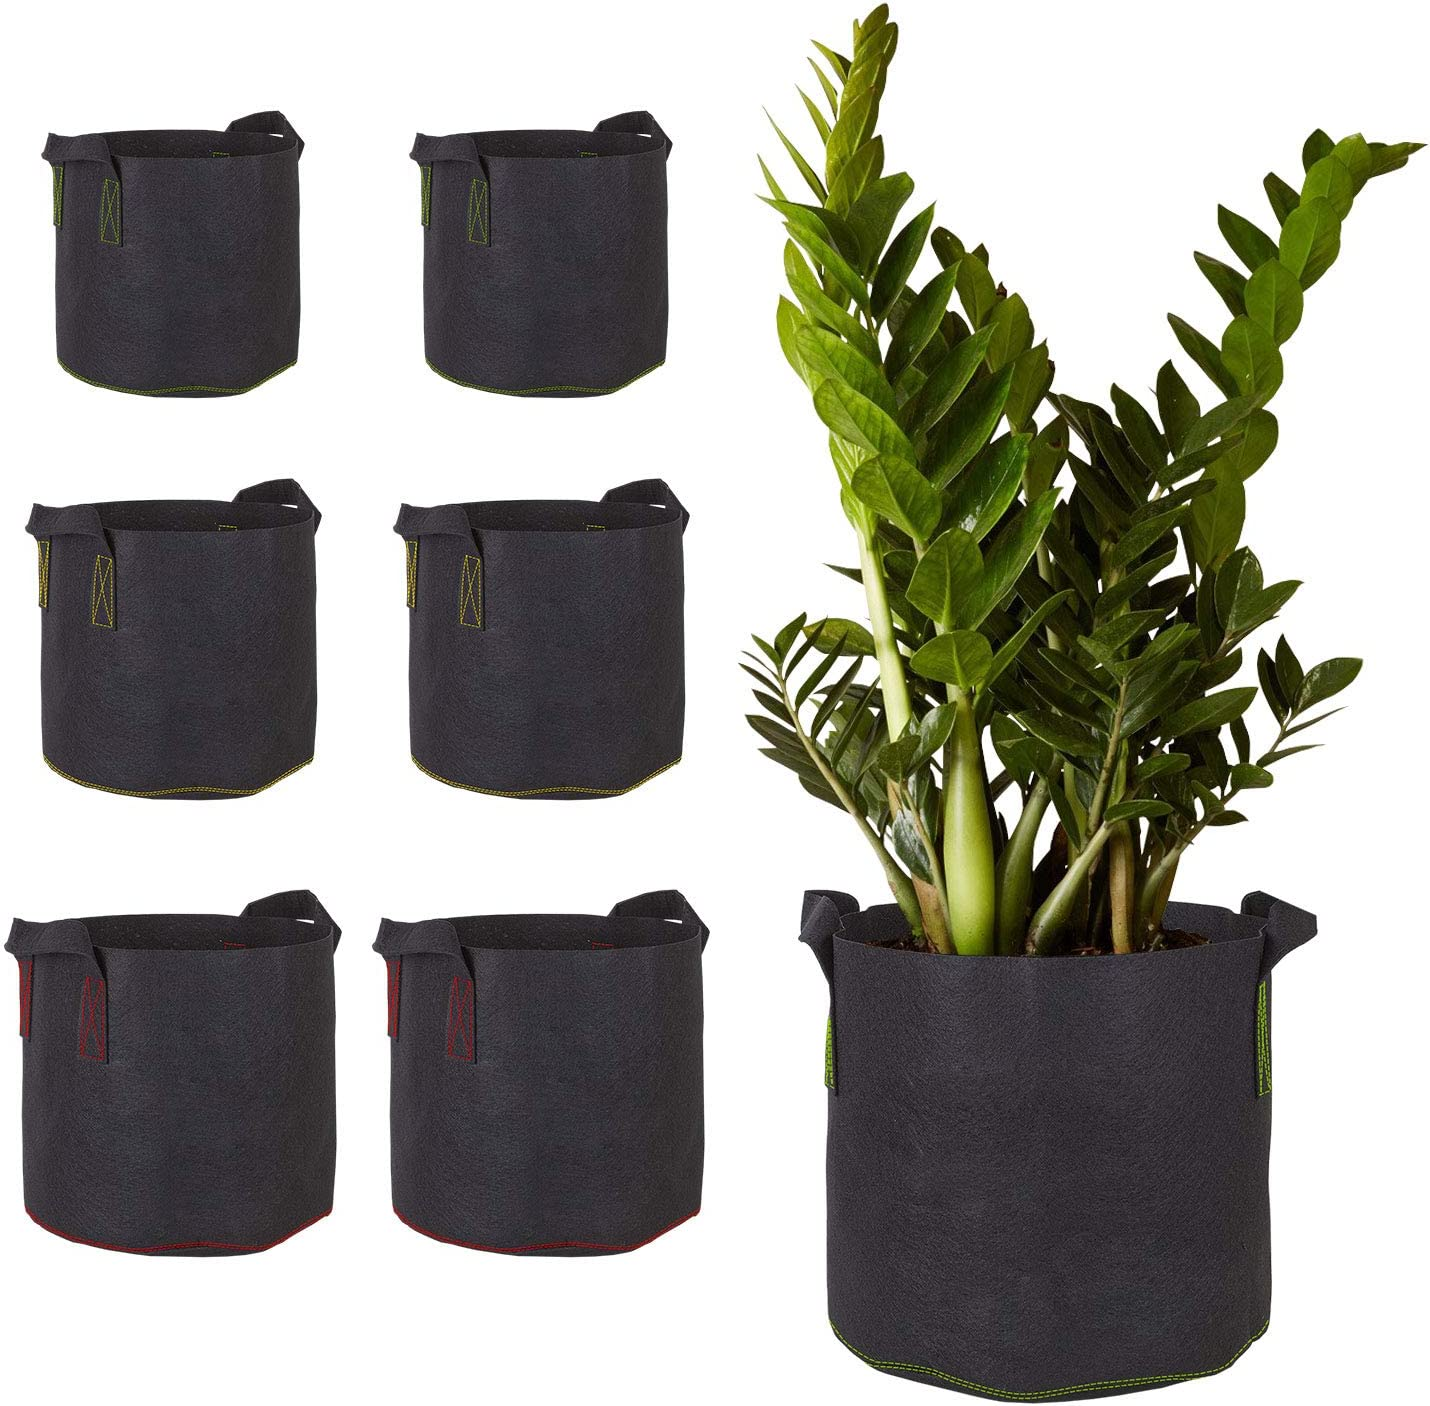 Assorted Sizes (3 Gallon, 5 Gallon & 7 Gallon) Aeration Fabric Pots with Handles for Plants, Vegetables & Flowers - 6 Pack